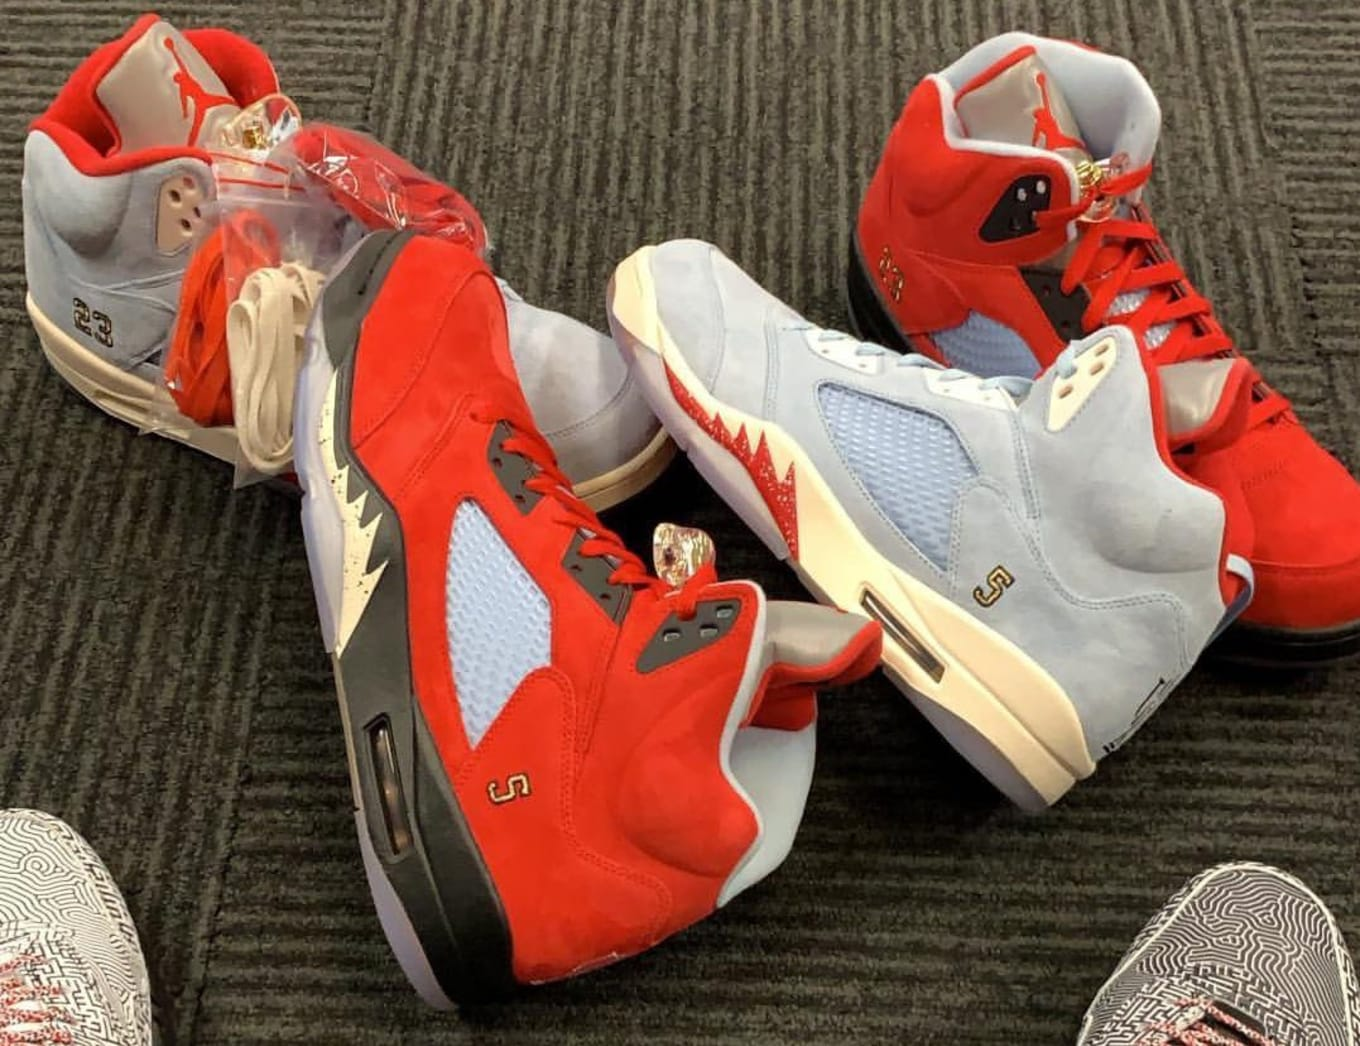 finest selection 5c5ef 9e8e4 Trophy Room Officially Unveiled Its Air Jordan 5 Collab.